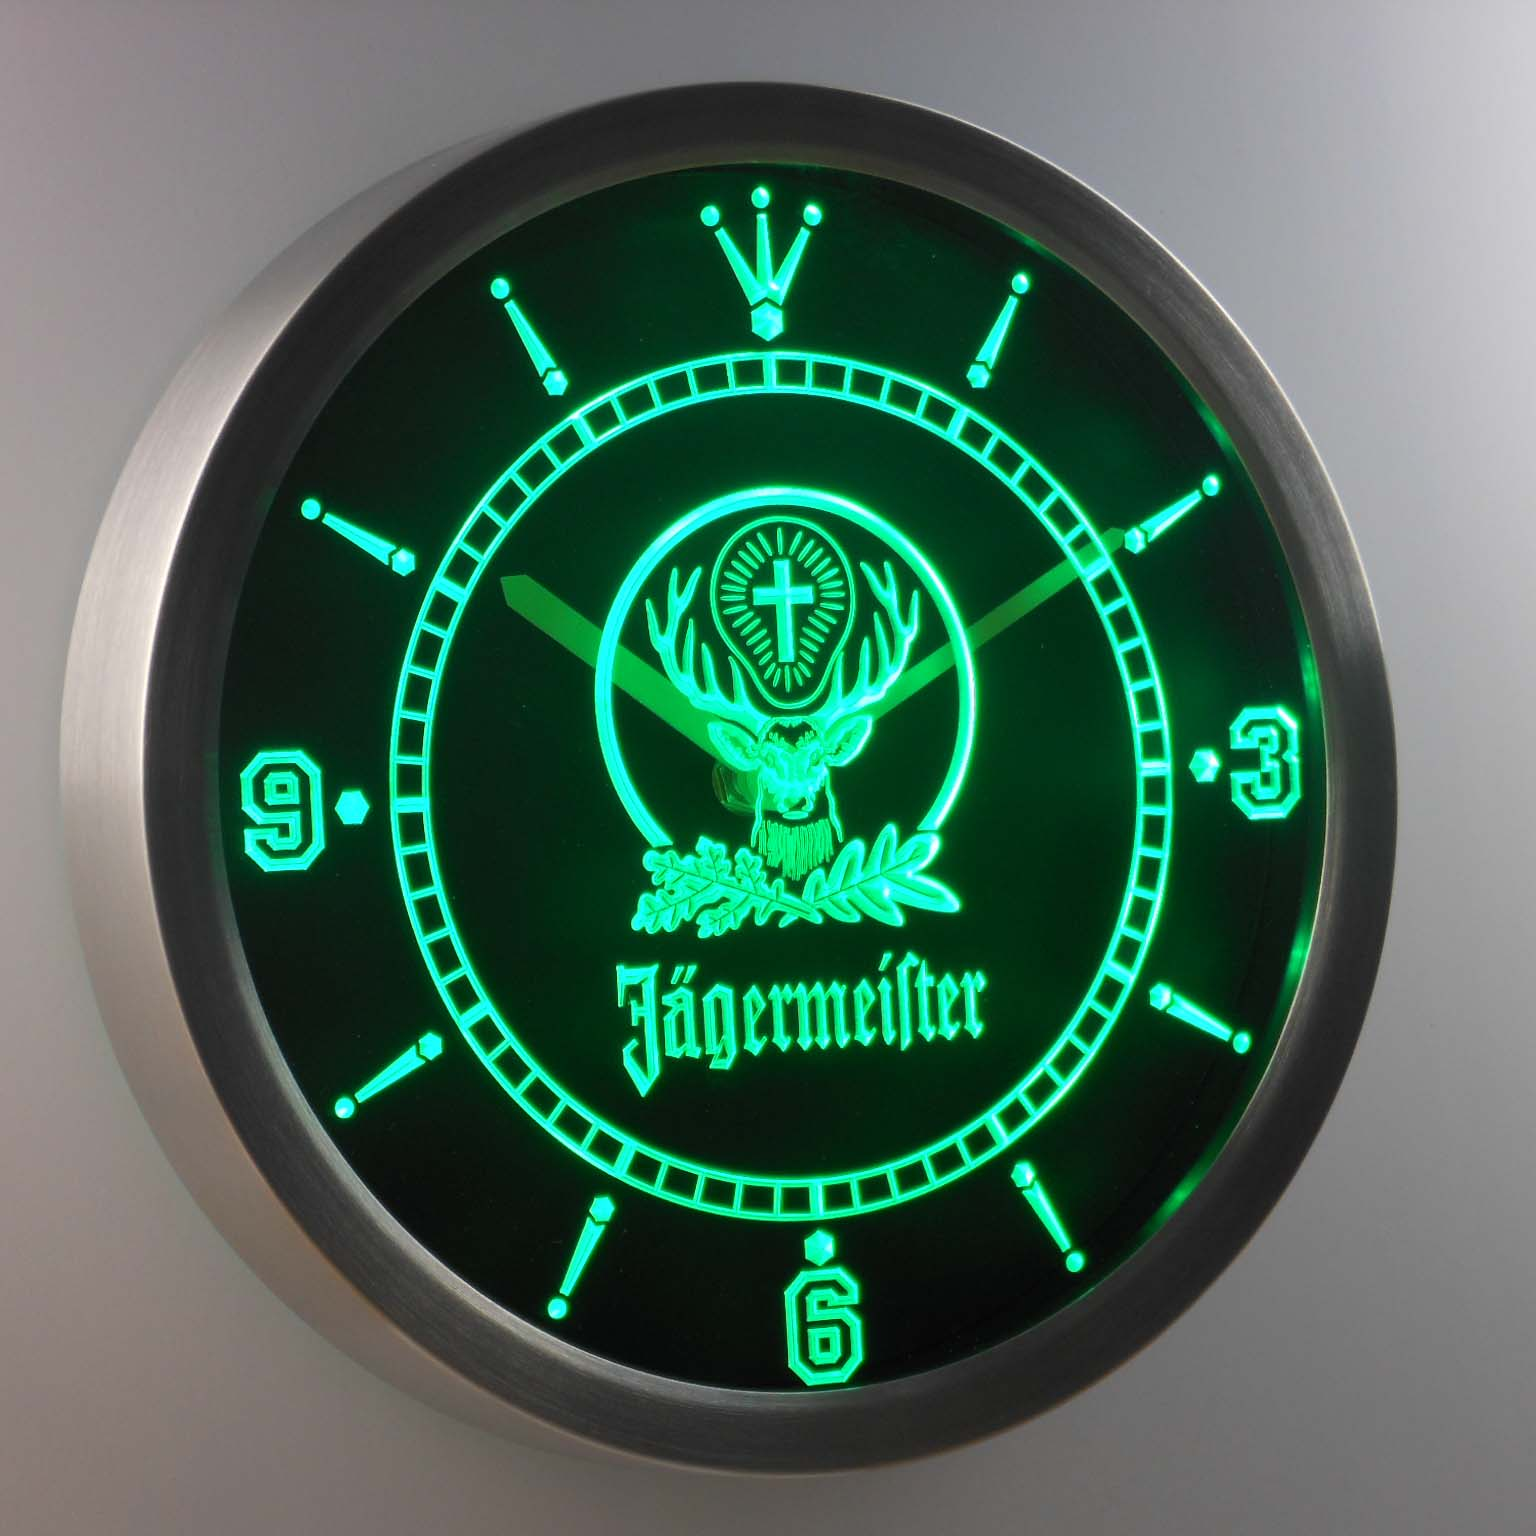 nc0572 Jagermeister Beer Neon Sign LED Wall Clock